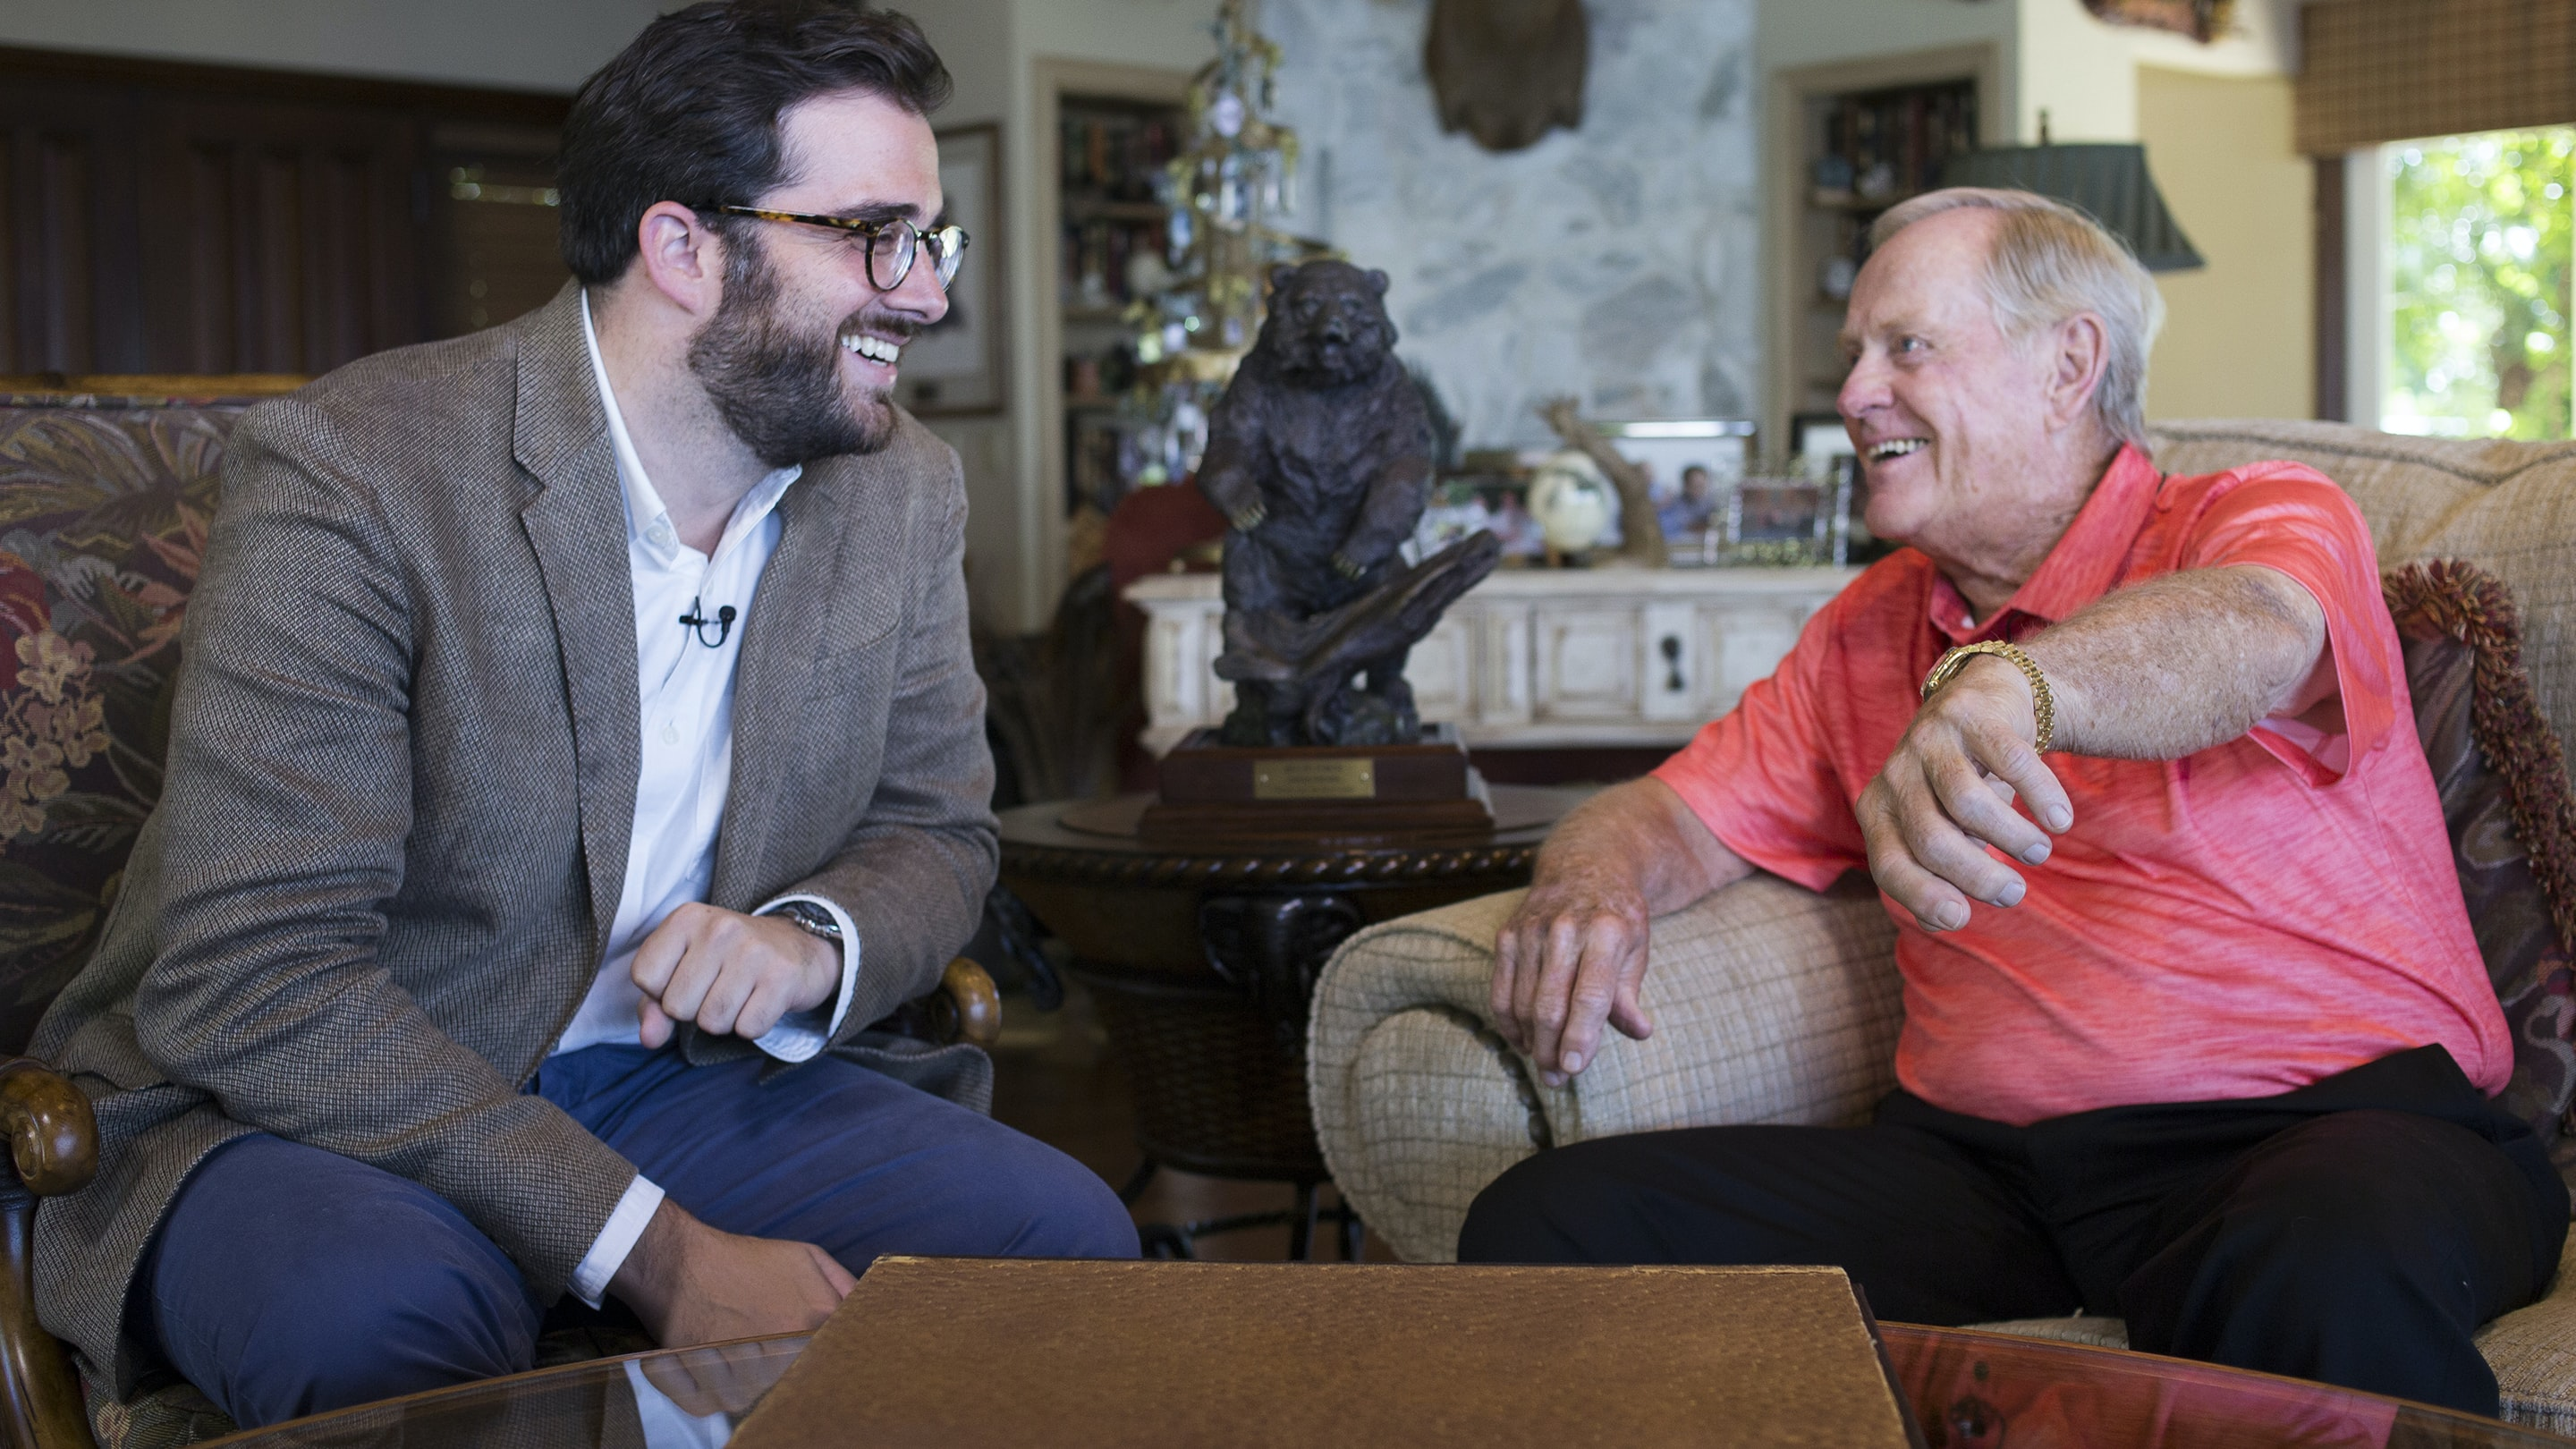 Sunday Rewind: Talking Watches With Jack Nicklaus